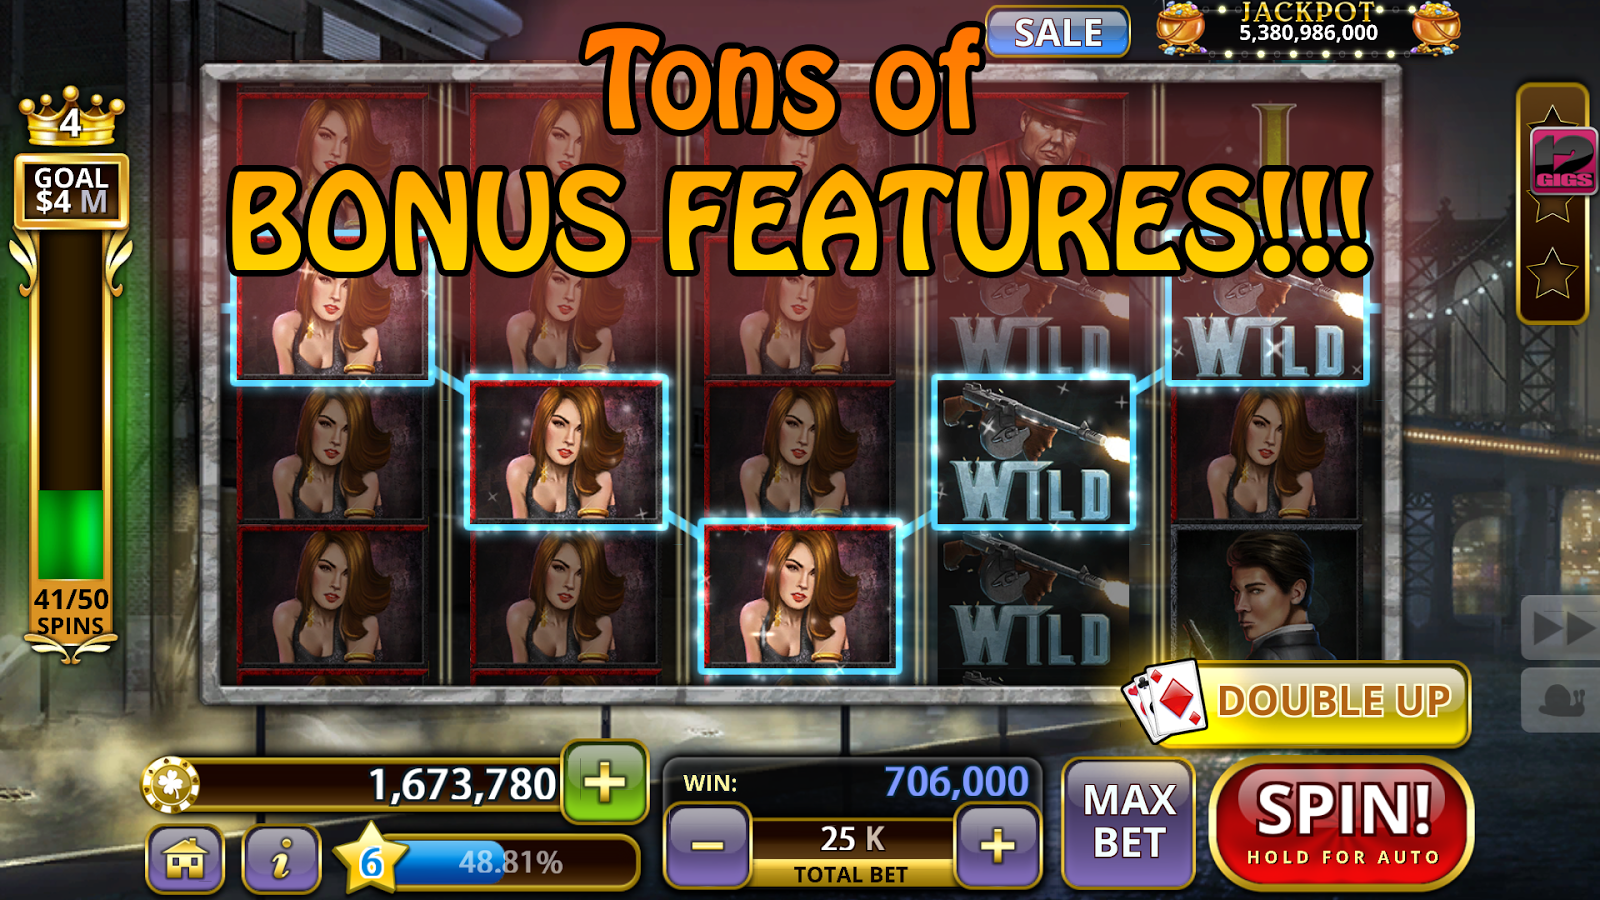 Ragnarok Slot Machine - Try it Online for Free or Real Money